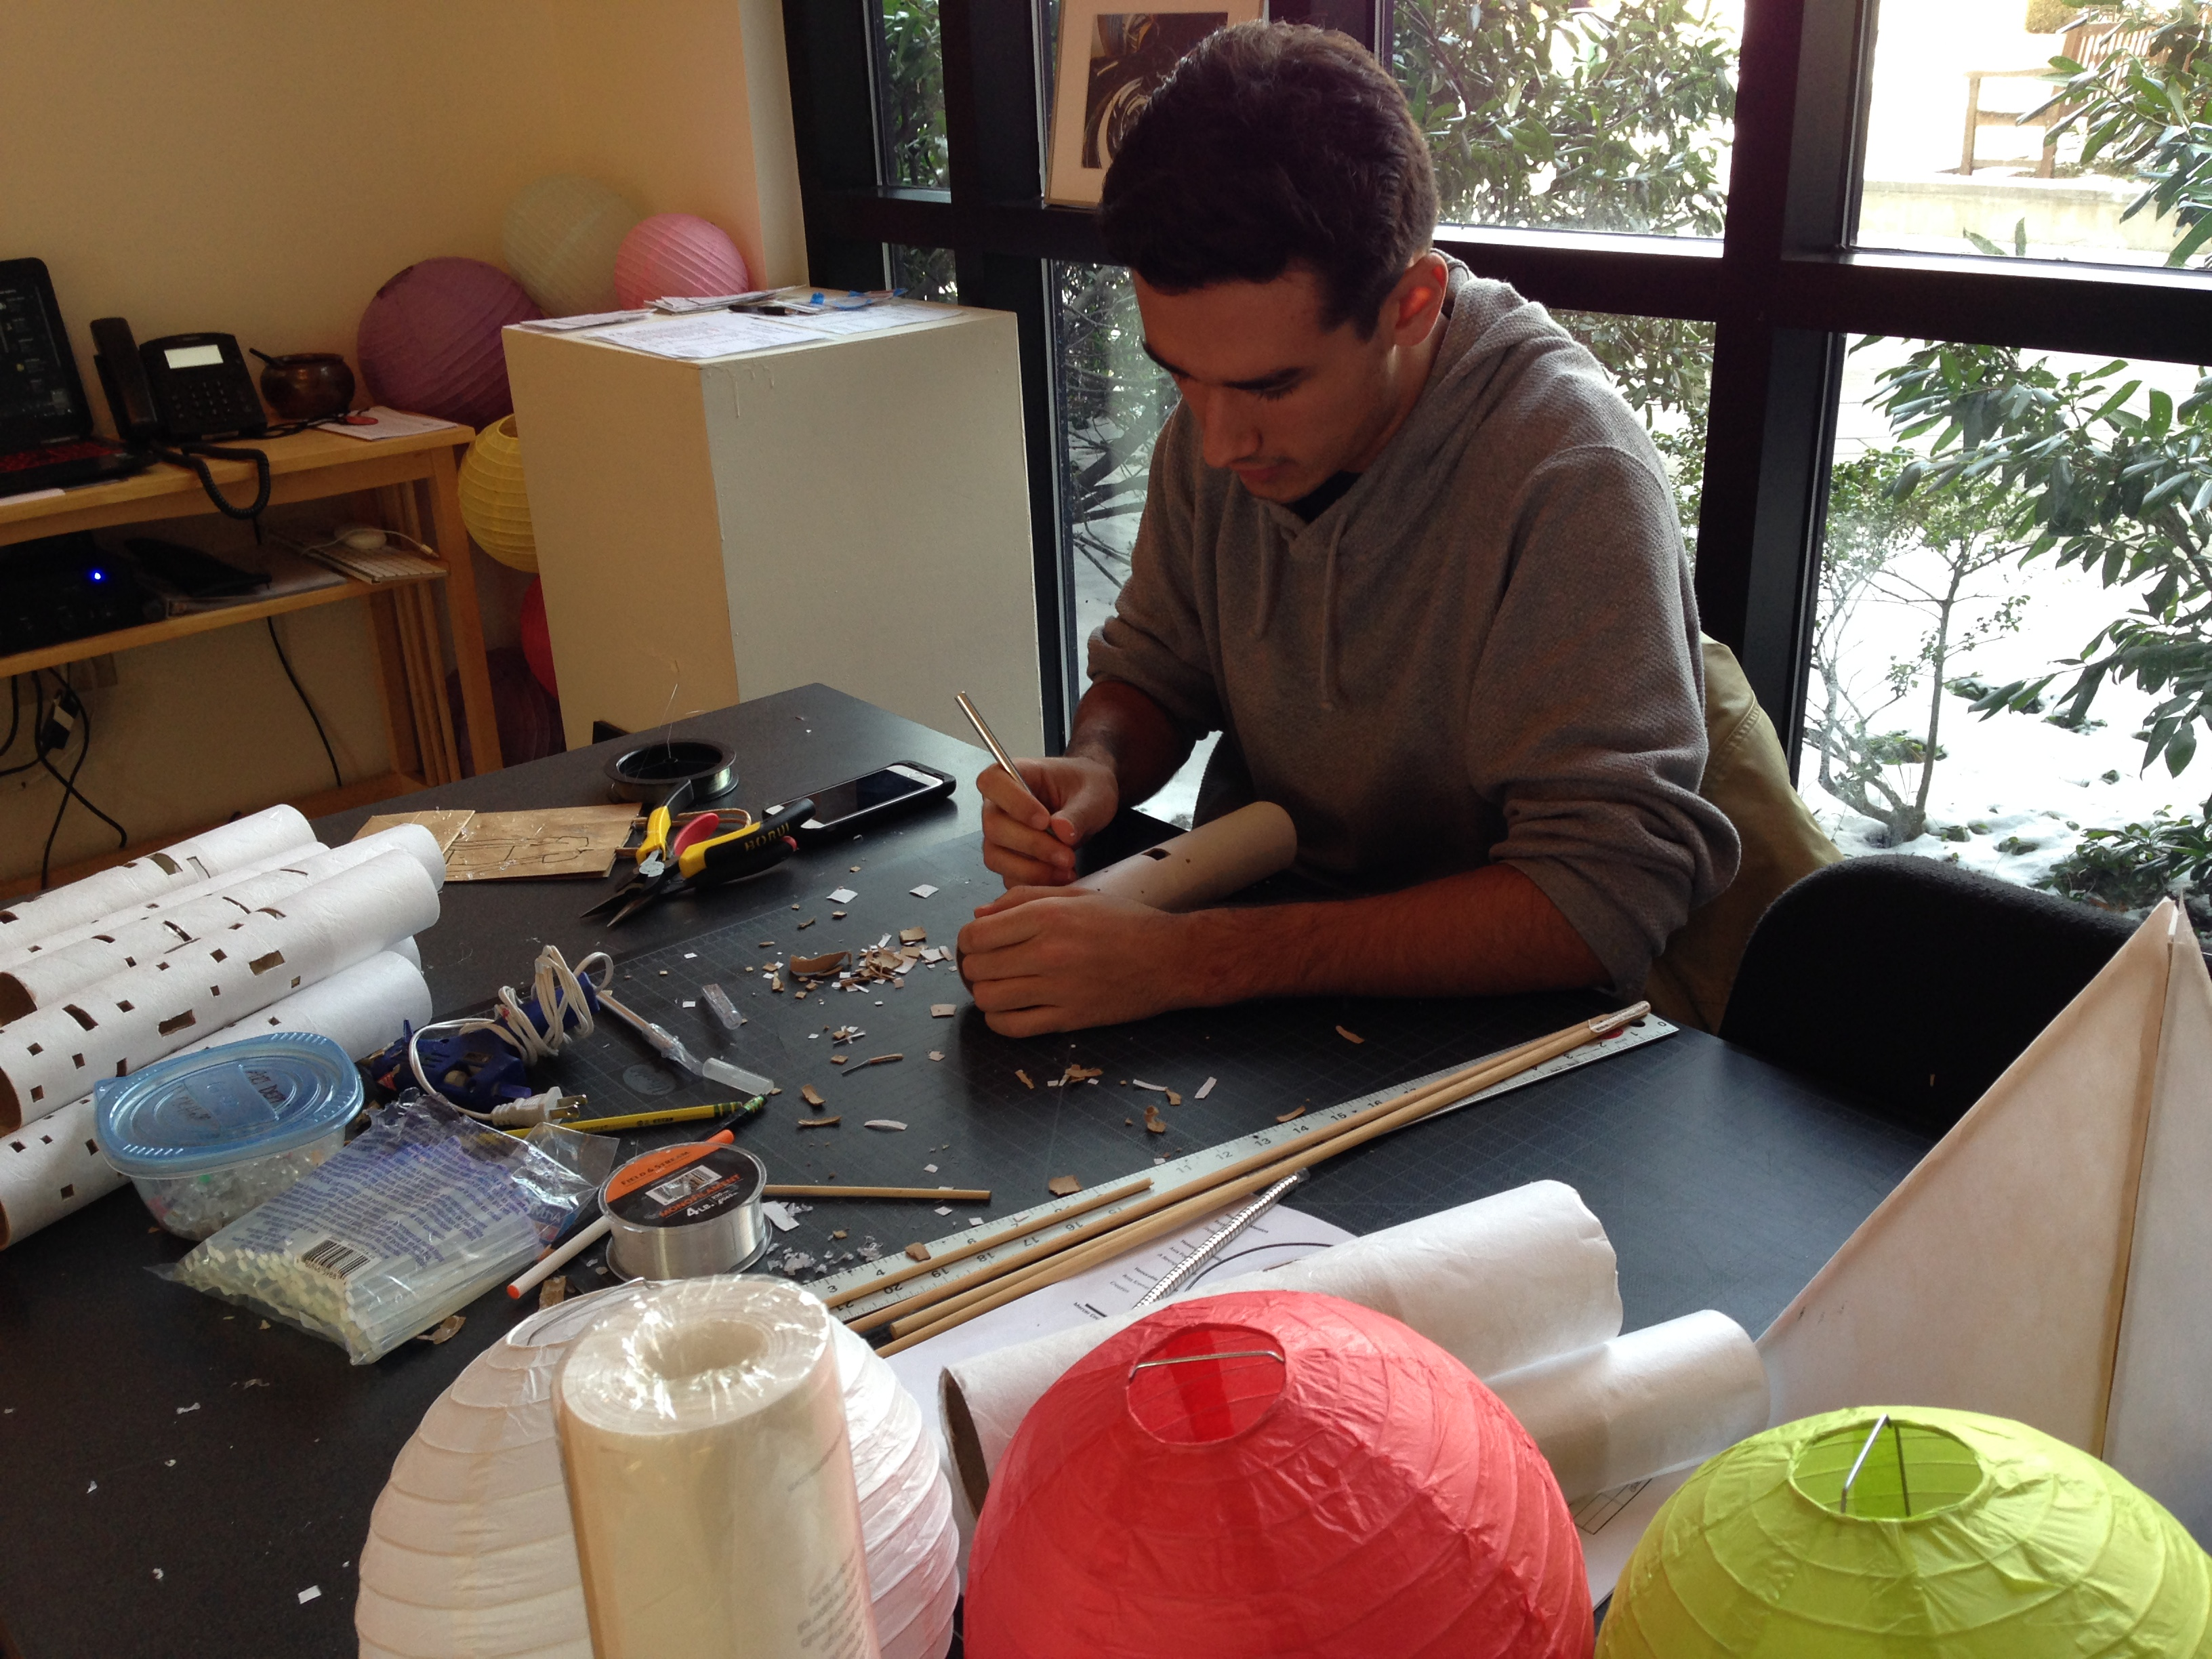 Artist in gallery working on project